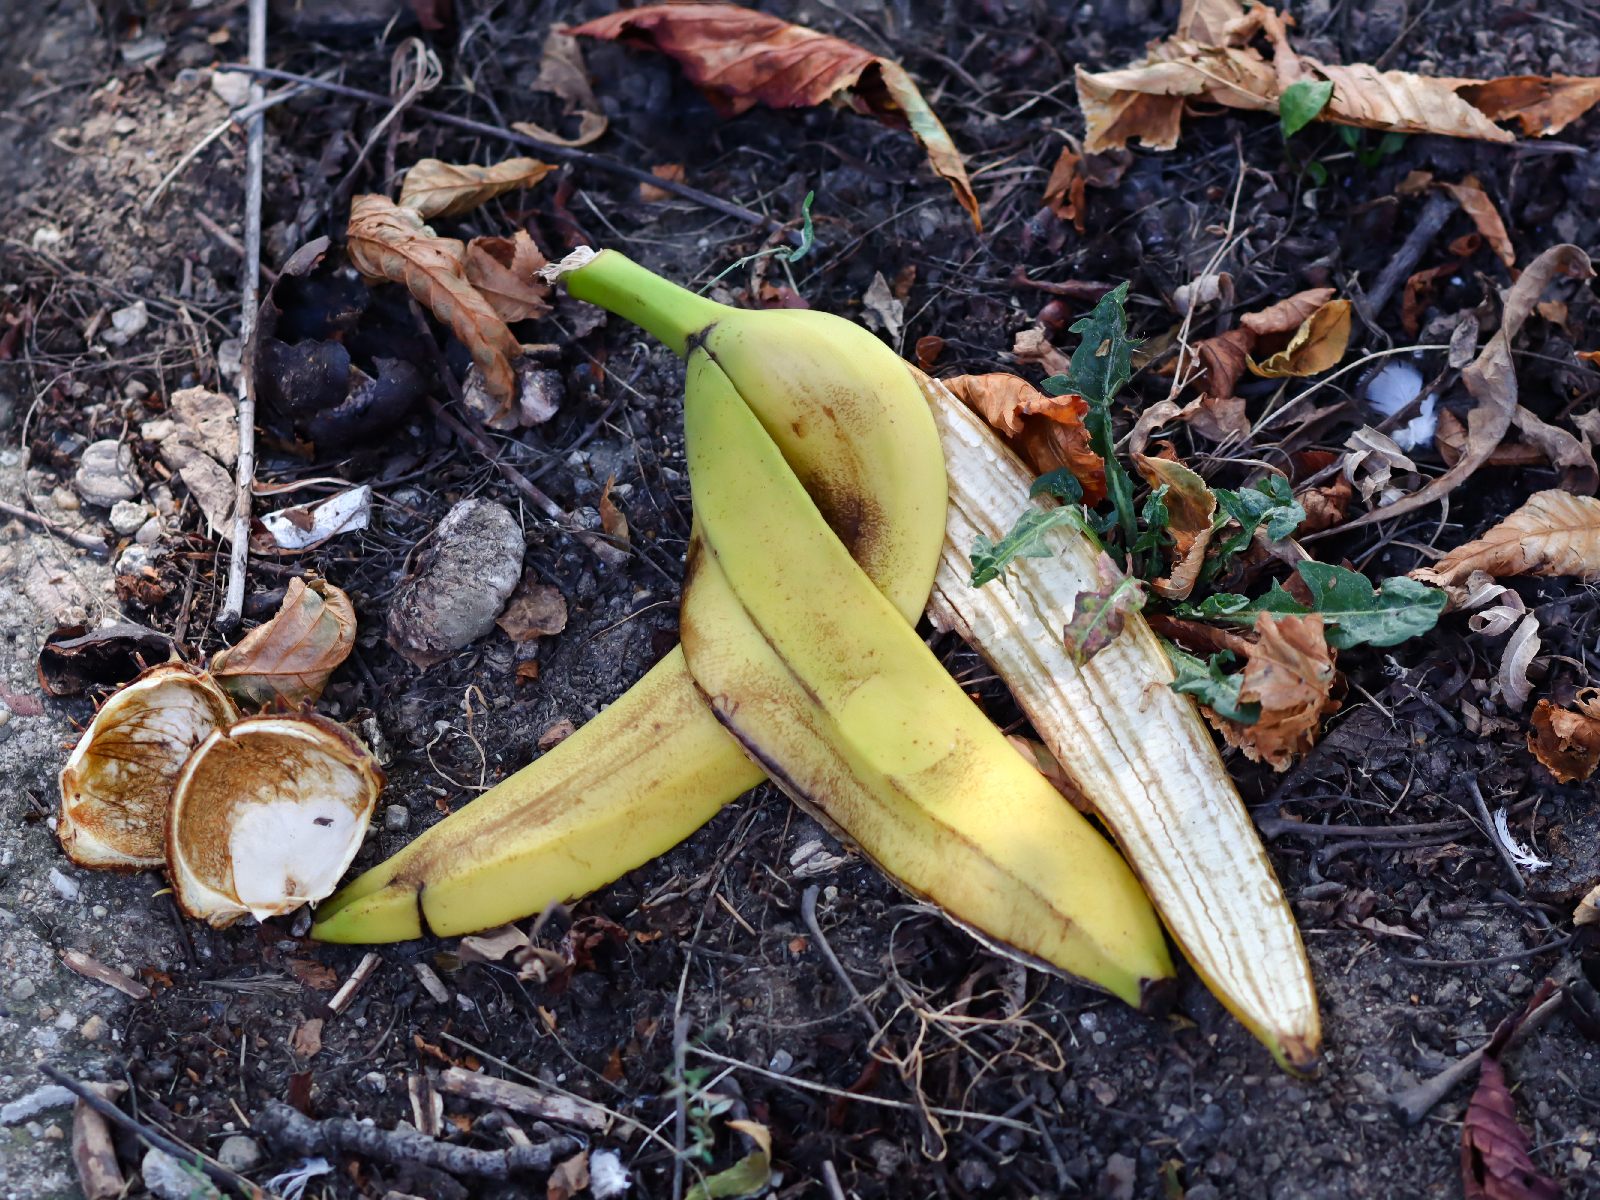 No Joke: Throwing a Banana Peel on the Ground Isn't a Good Idea... Even in Nature